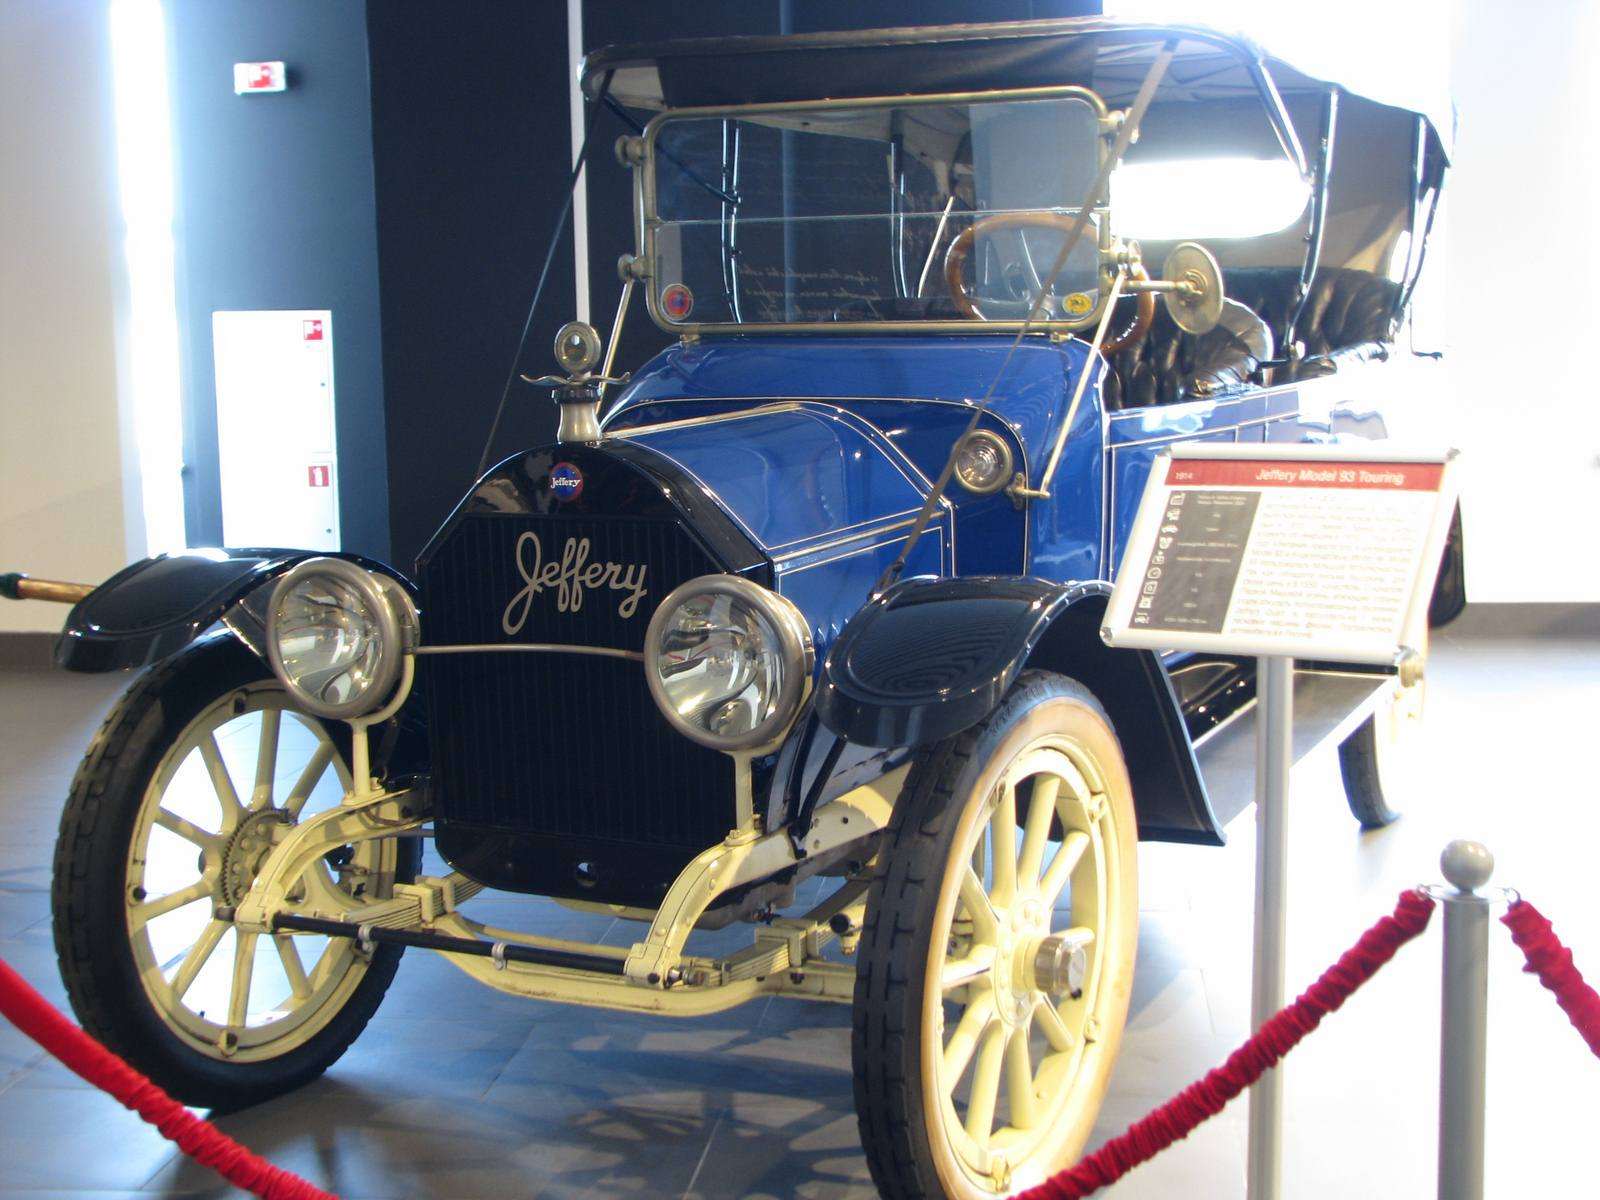 1914. Jeffery Model 93 Touring